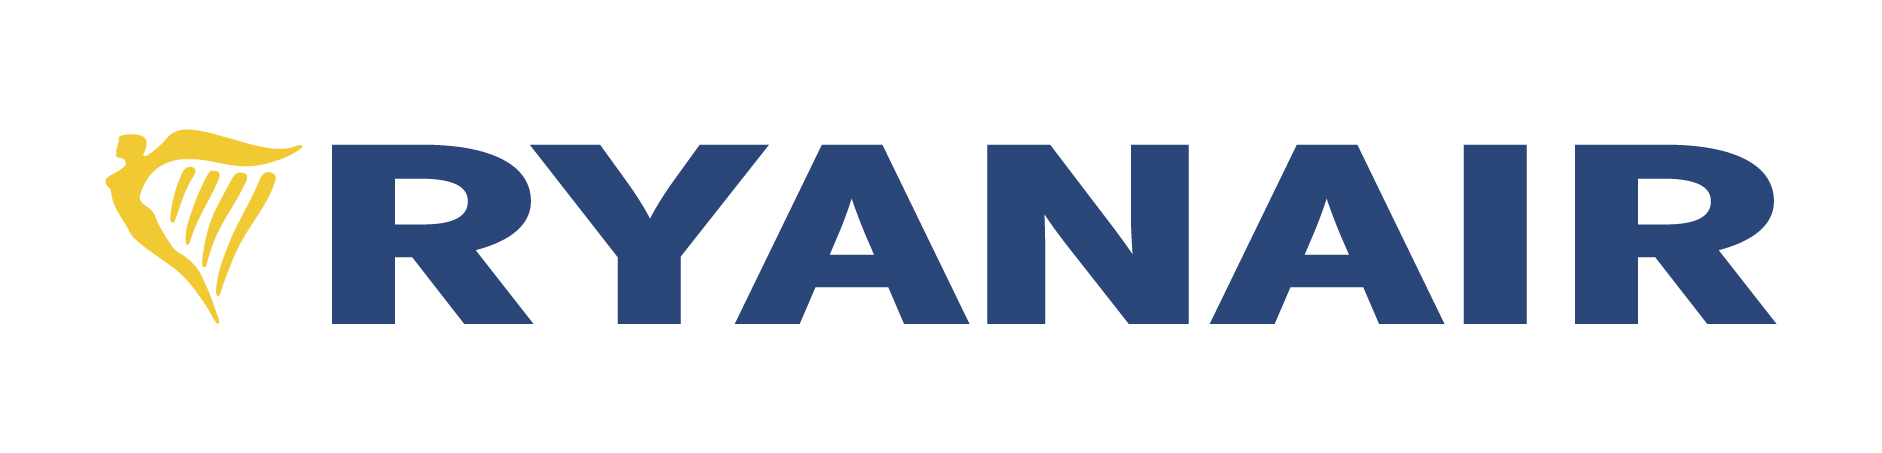 Image result for ryanair logo